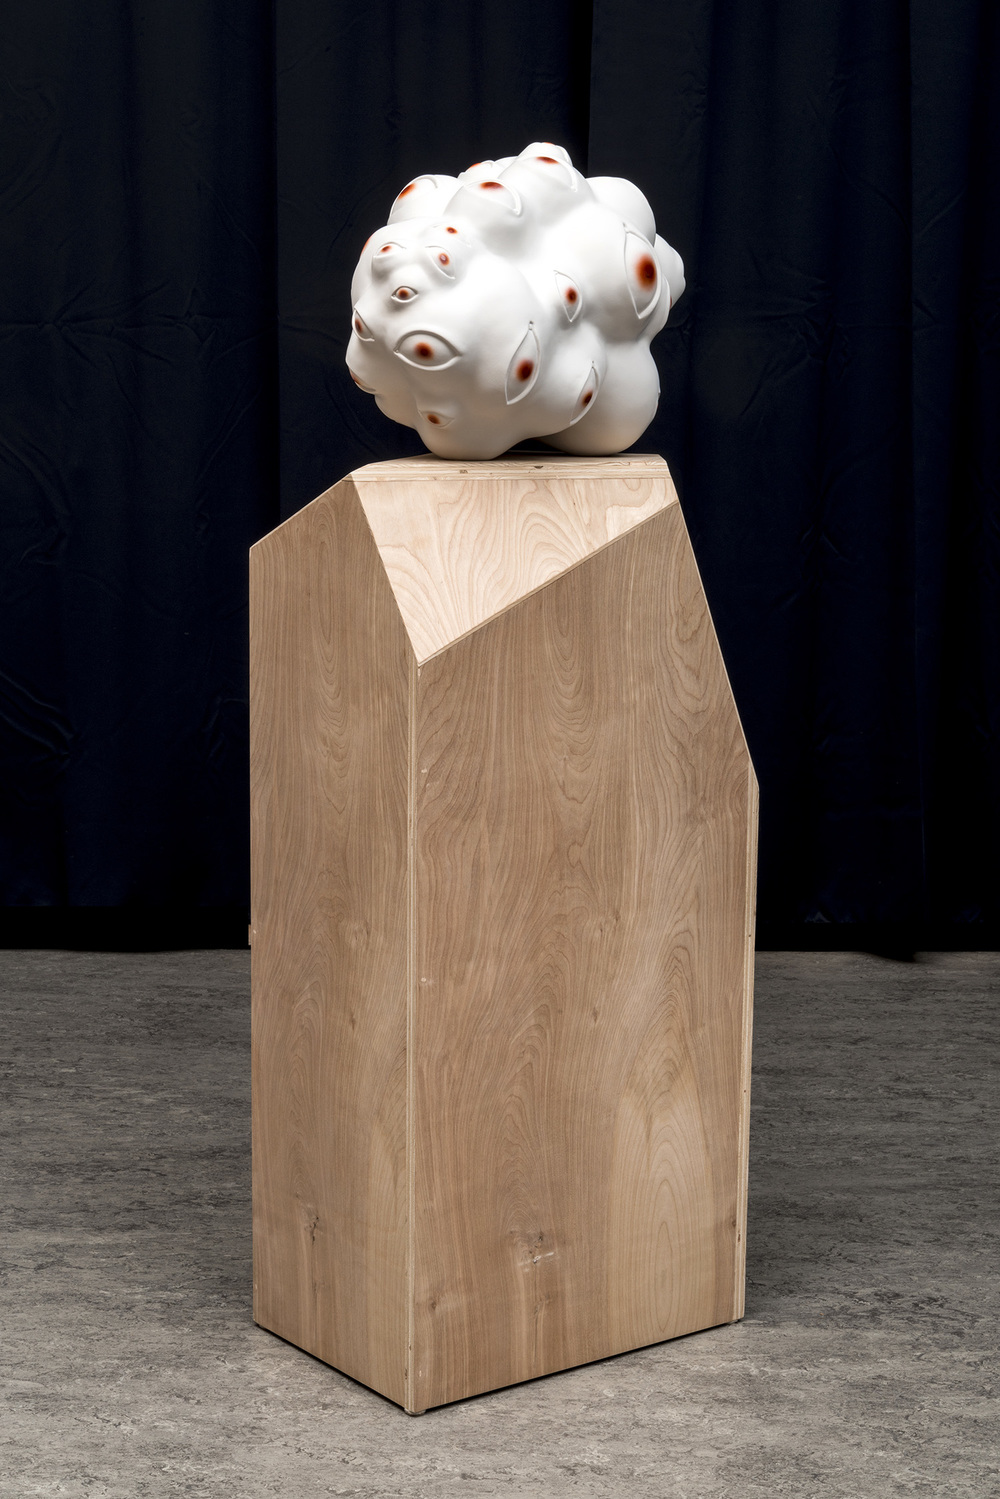 """Tanya Batura  Untitled (eye blob)  2014 Clay, acrylic 14 x 12 x 18 inches 54 x 13 x 19 inches with pedestal Courtesy of 101/Exhibit Photography: Alan Shaffer          Normal   0           false   false   false     EN-US   X-NONE   X-NONE                                                                                                                                                                                                                                                                                                                                                                                 /* Style Definitions */  table.MsoNormalTable {mso-style-name:""""Table Normal""""; mso-tstyle-rowband-size:0; mso-tstyle-colband-size:0; mso-style-noshow:yes; mso-style-priority:99; mso-style-qformat:yes; mso-style-parent:""""""""; mso-padding-alt:0in 5.4pt 0in 5.4pt; mso-para-margin-top:0in; mso-para-margin-right:0in; mso-para-margin-bottom:10.0pt; mso-para-margin-left:0in; line-height:115%; mso-pagination:widow-orphan; font-size:10.0pt; font-family:""""Cambria"""",""""serif""""; mso-fareast-font-family:""""MS Mincho""""; mso-bidi-font-family:""""Times New Roman"""";}"""